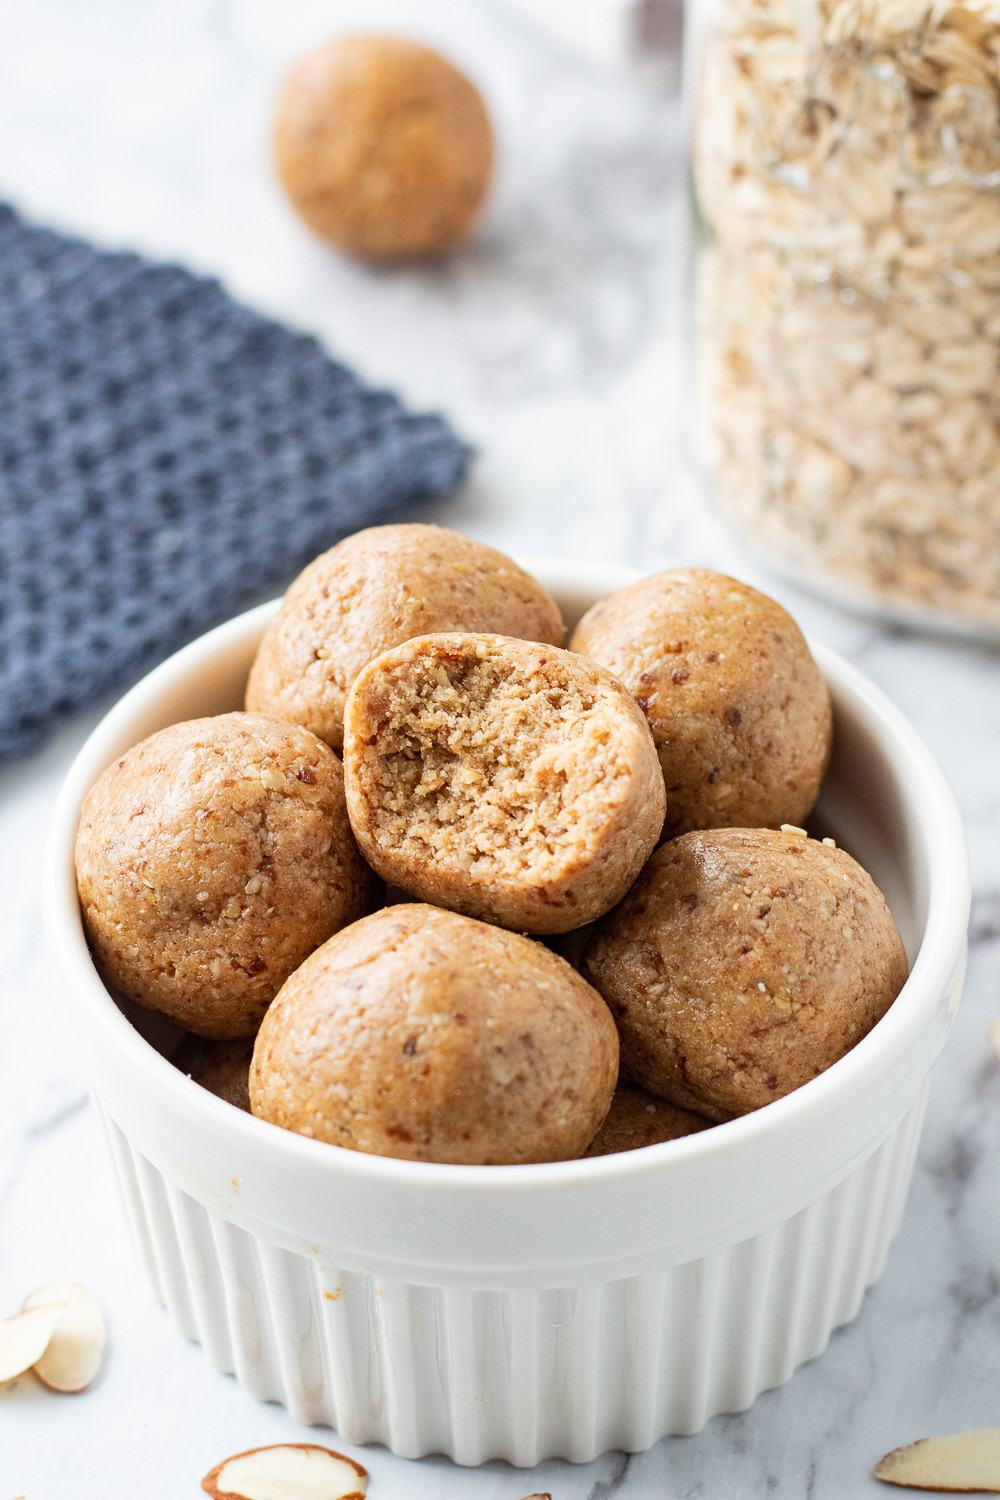 7 almond butter protein balls in a white bowl with slivered almonds.